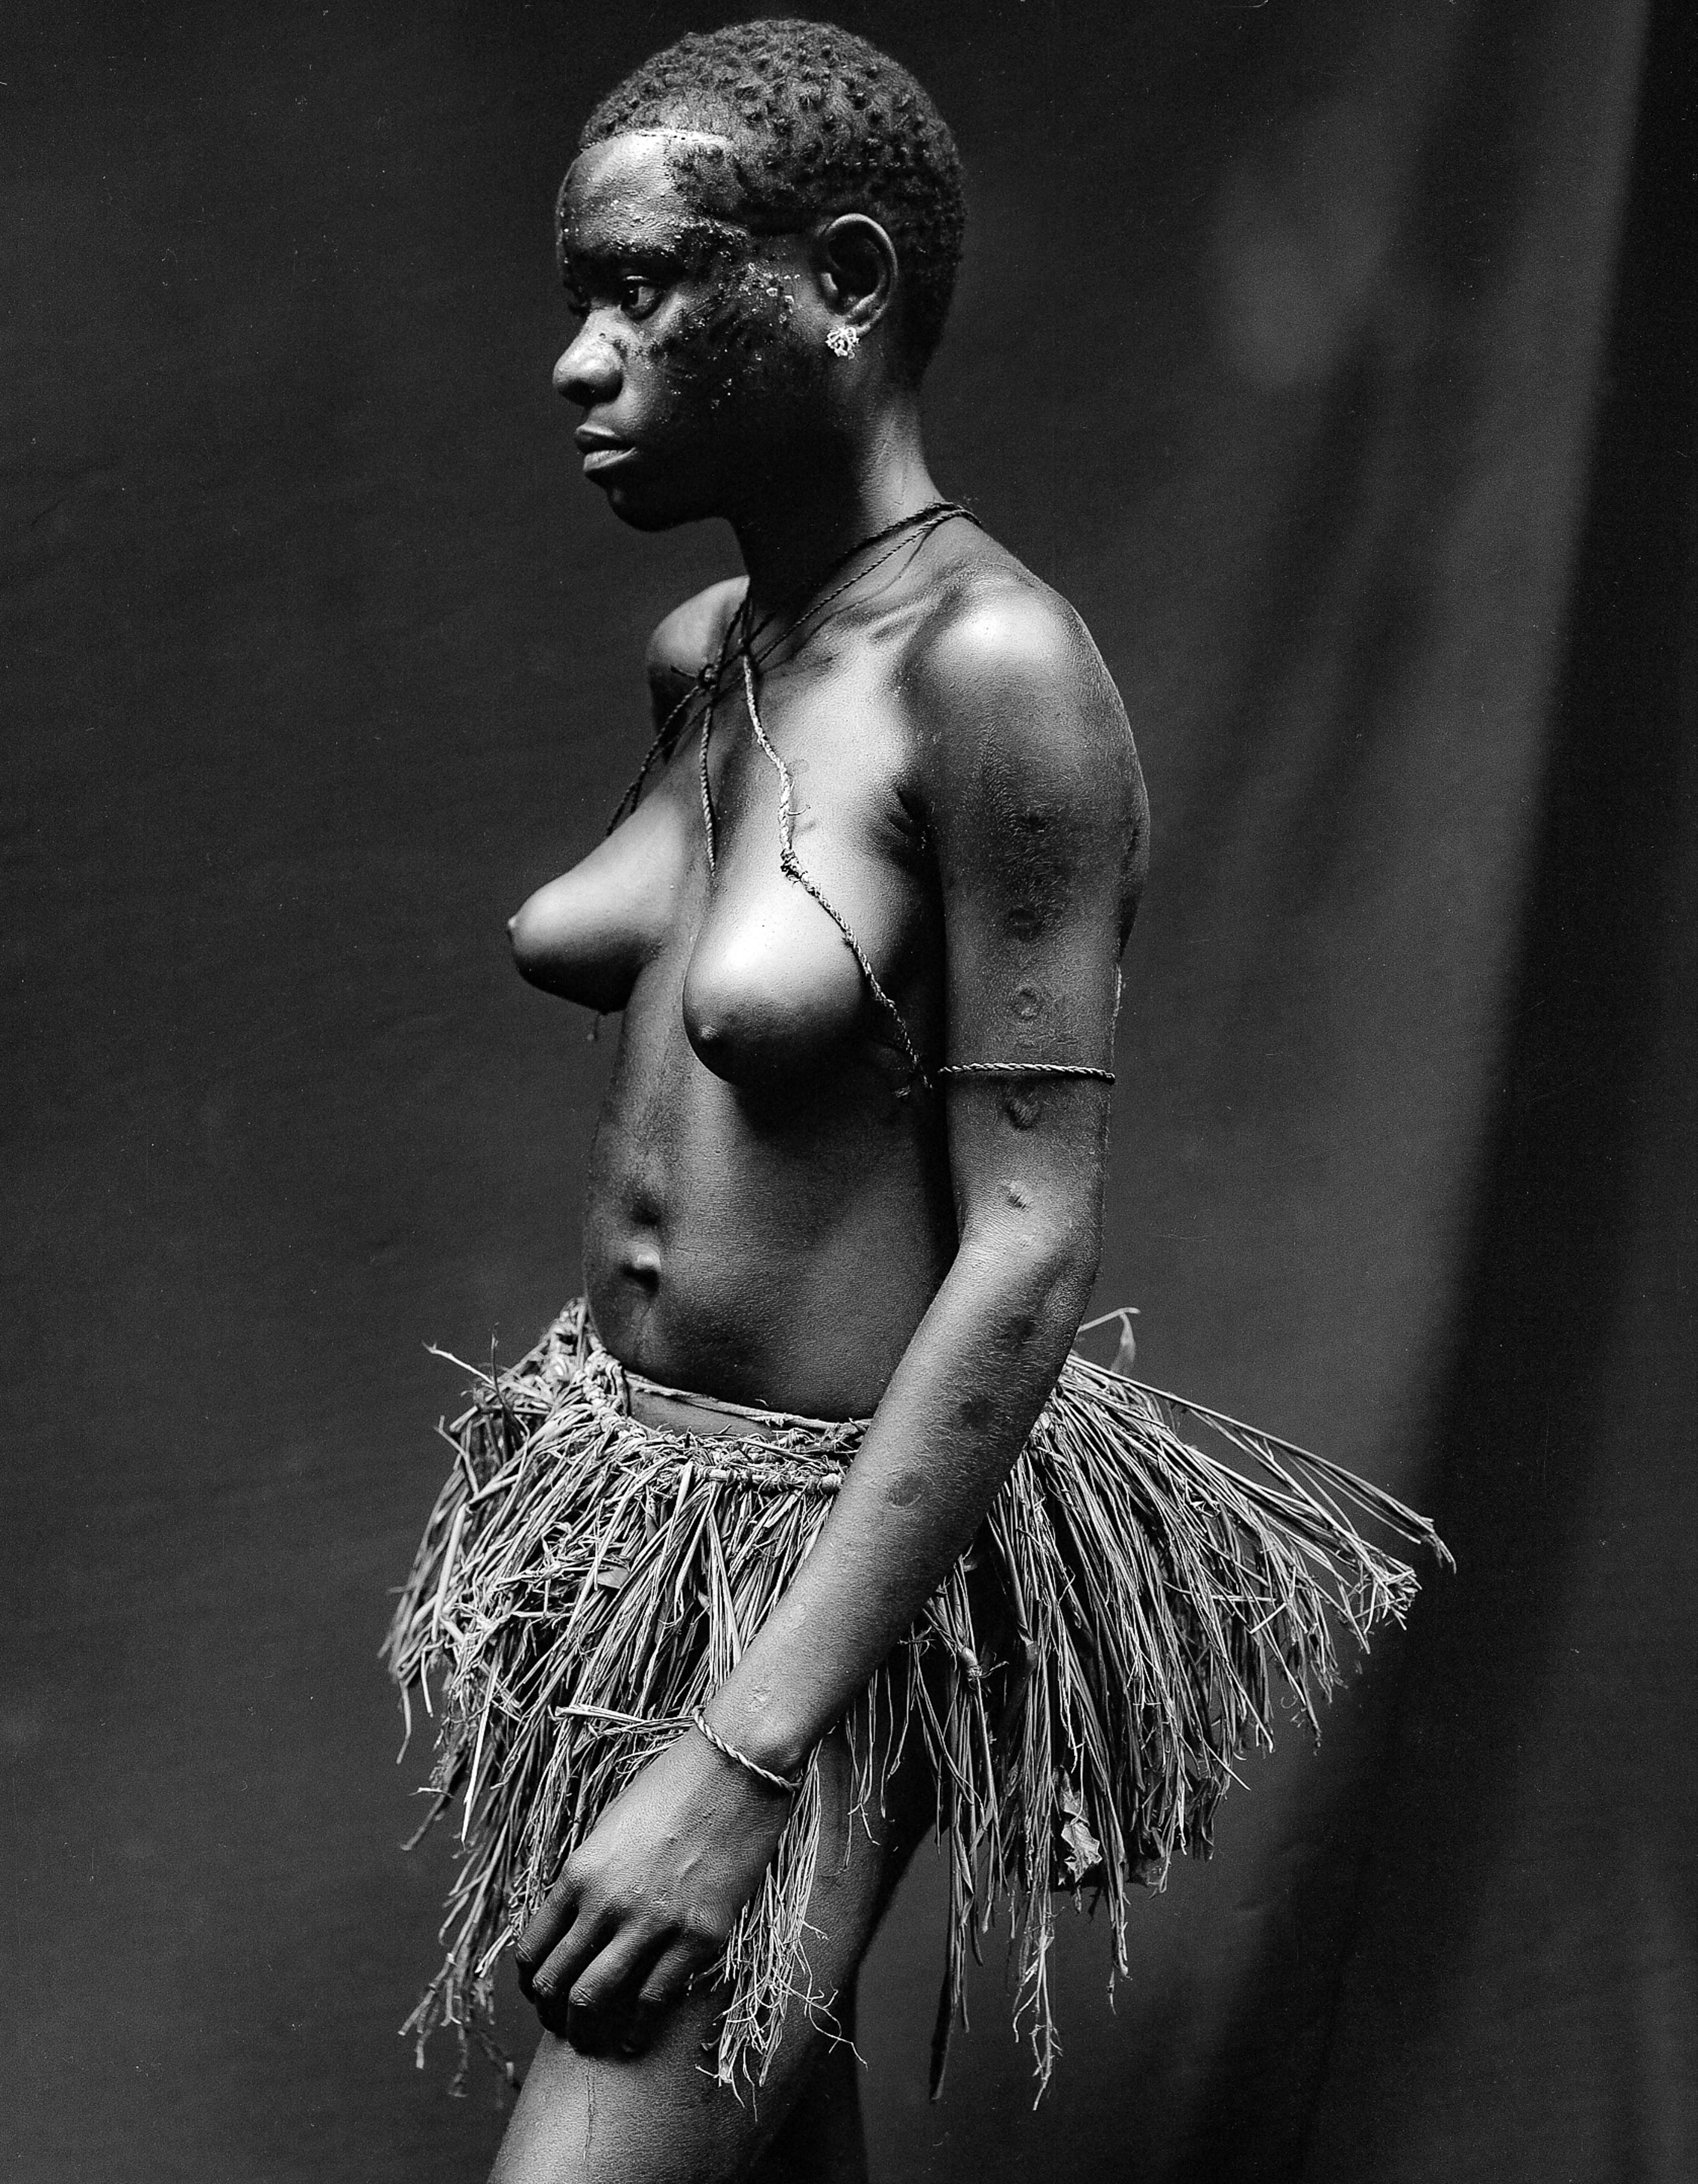 Central African Republic, Pygmy Girl In Grass Skirt, 2000